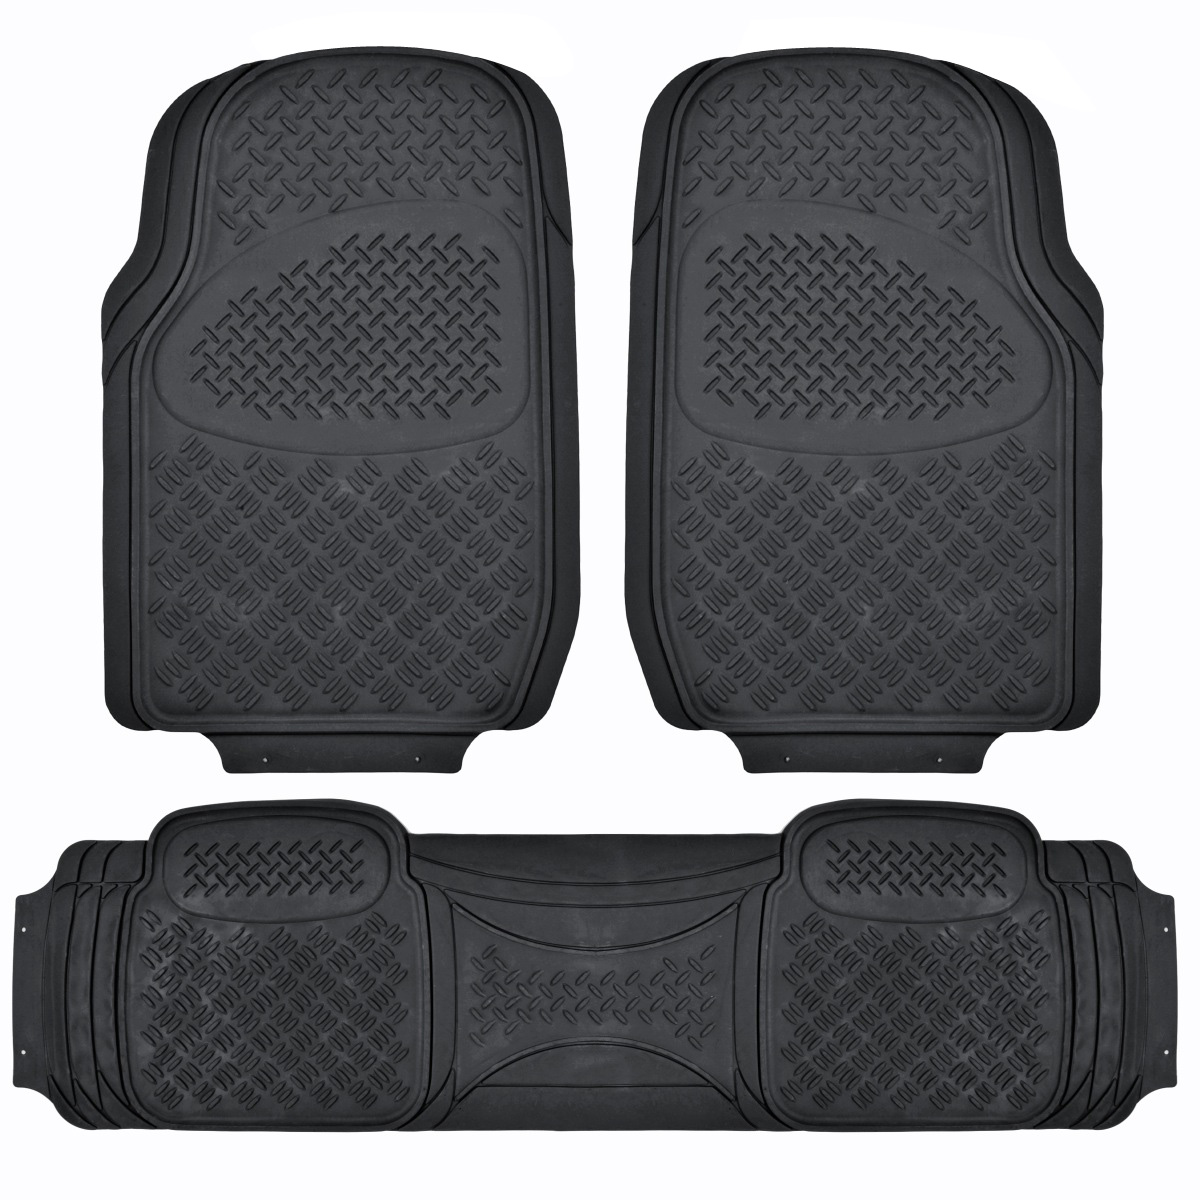 Suv Floor Mat For 3 Row Car All Weather Black Trimmable